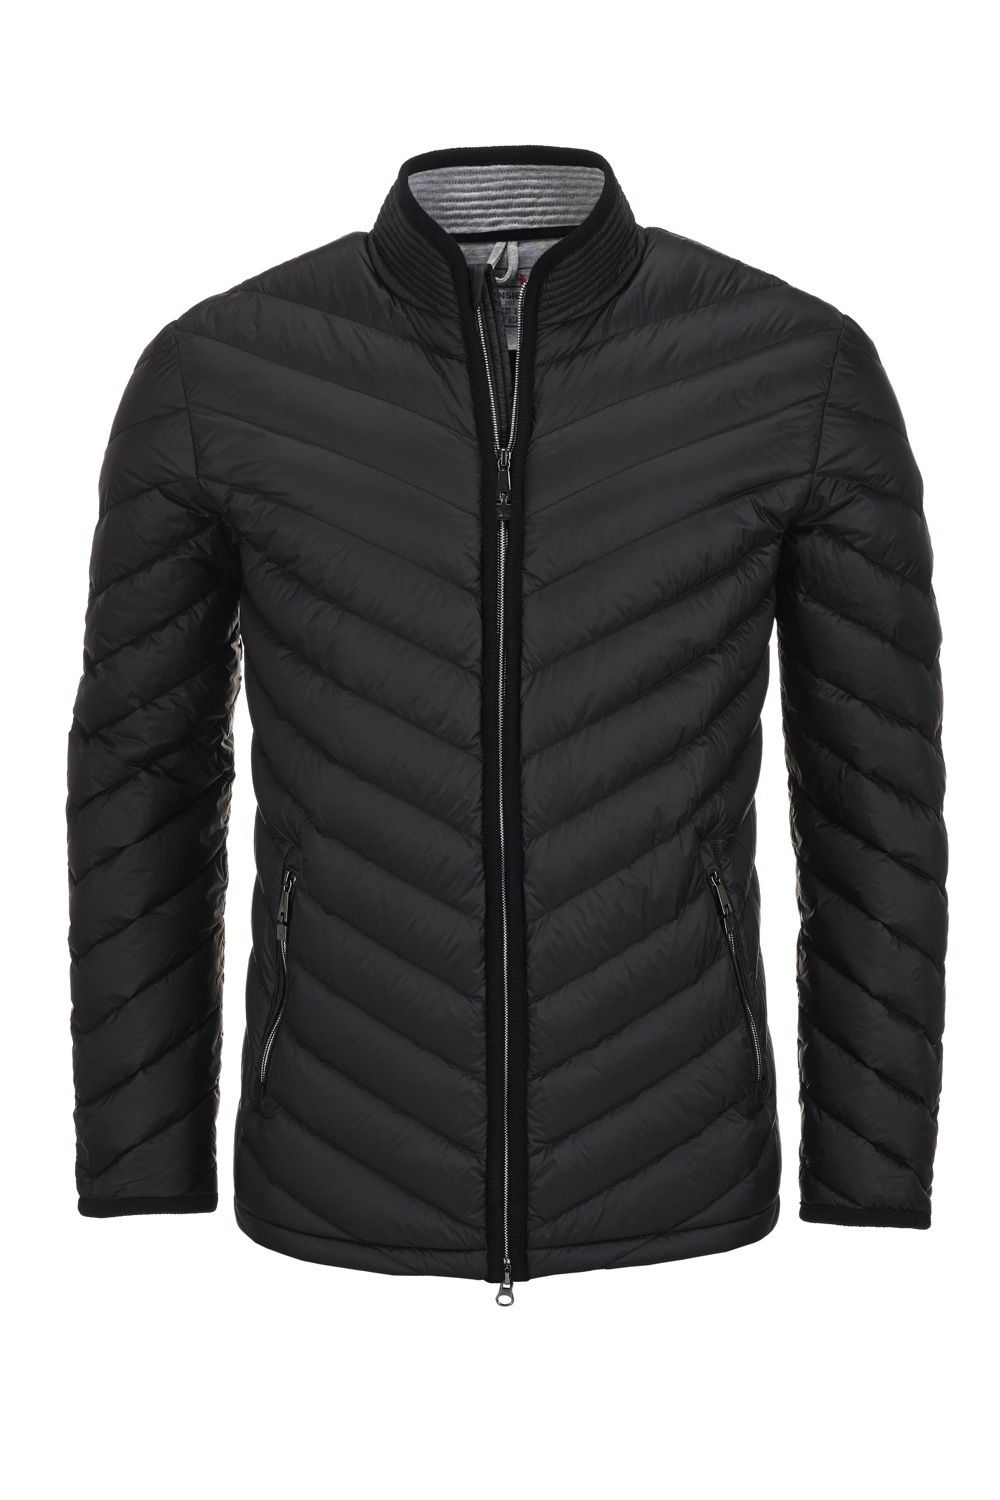 Herren Daunenjacke LIGHT , BLACK, XXL